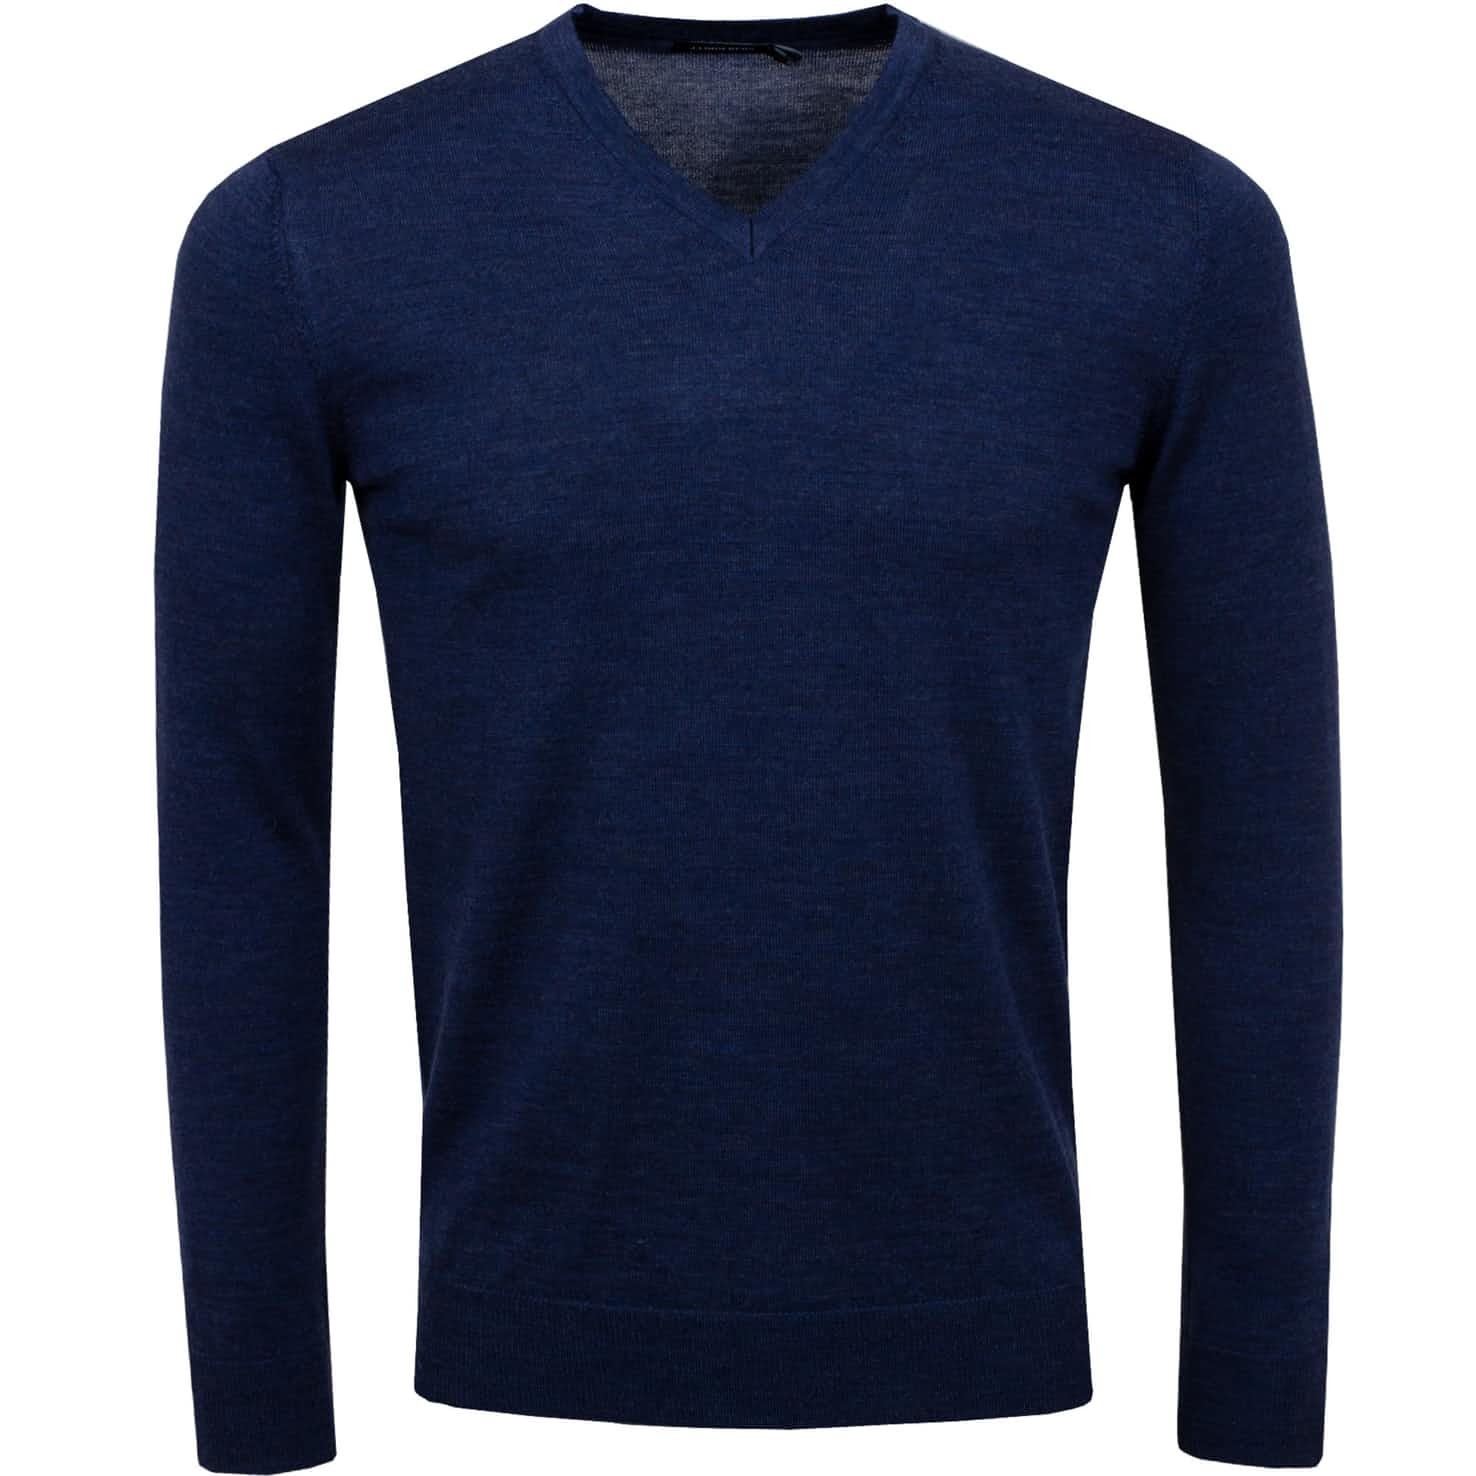 Newman V-Neck Perfect Merino JL Navy - SS20